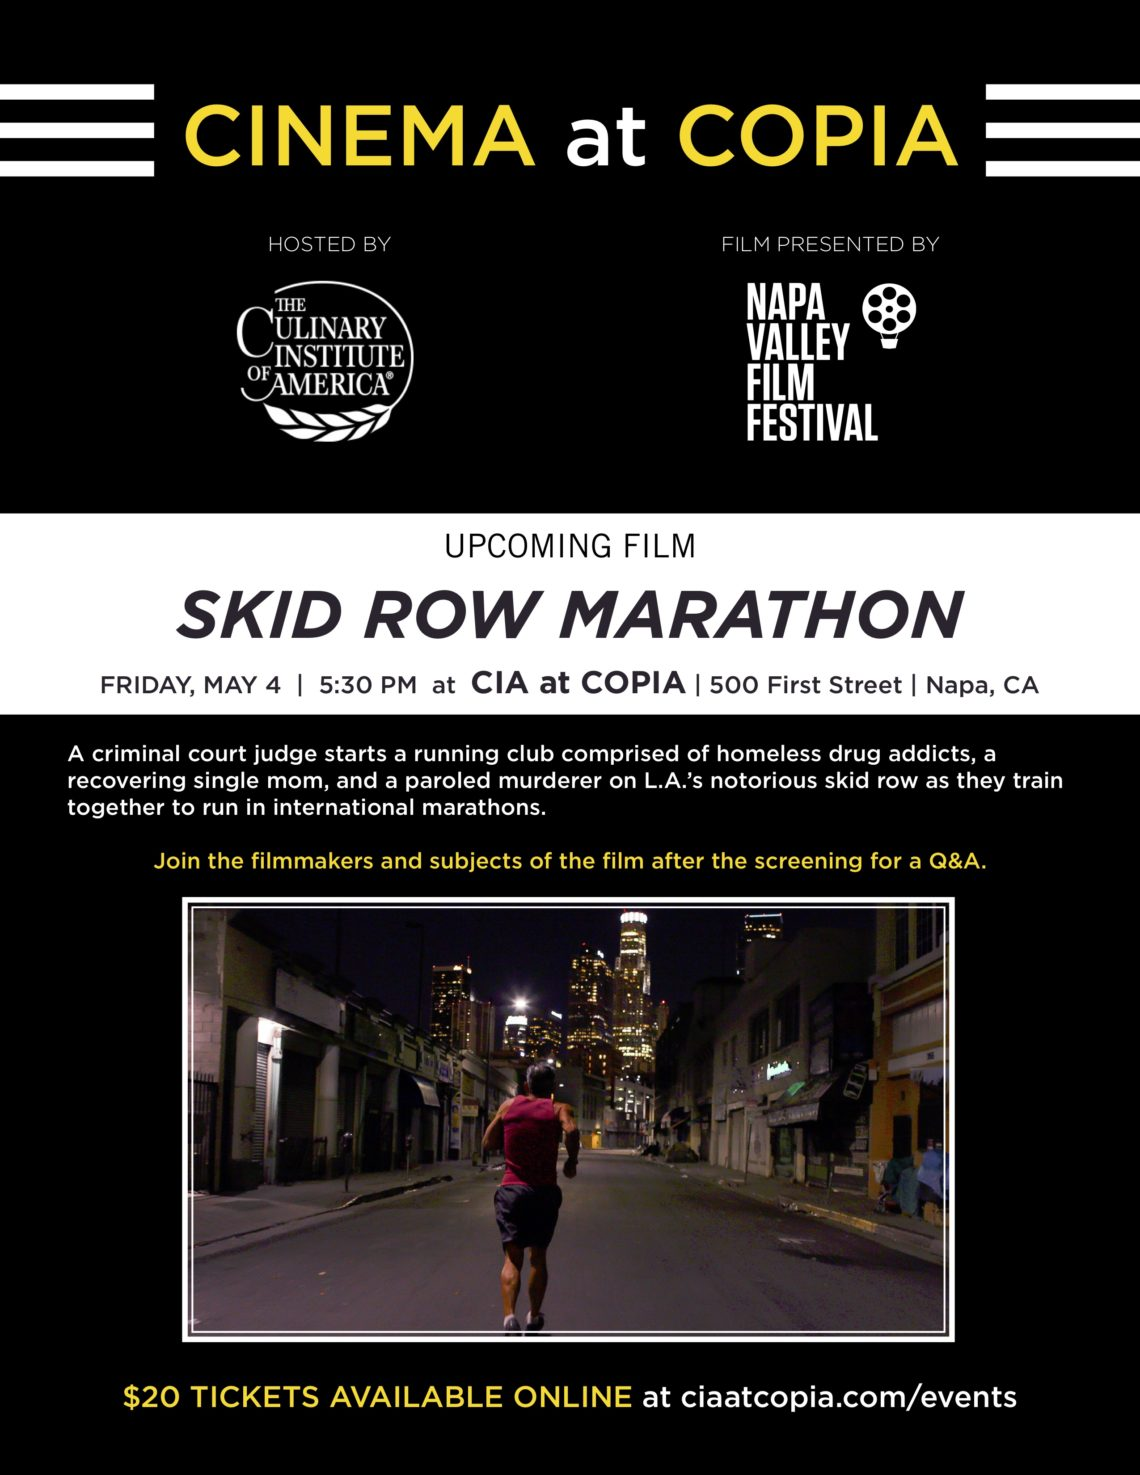 Skid Row Marathon Screening May 4